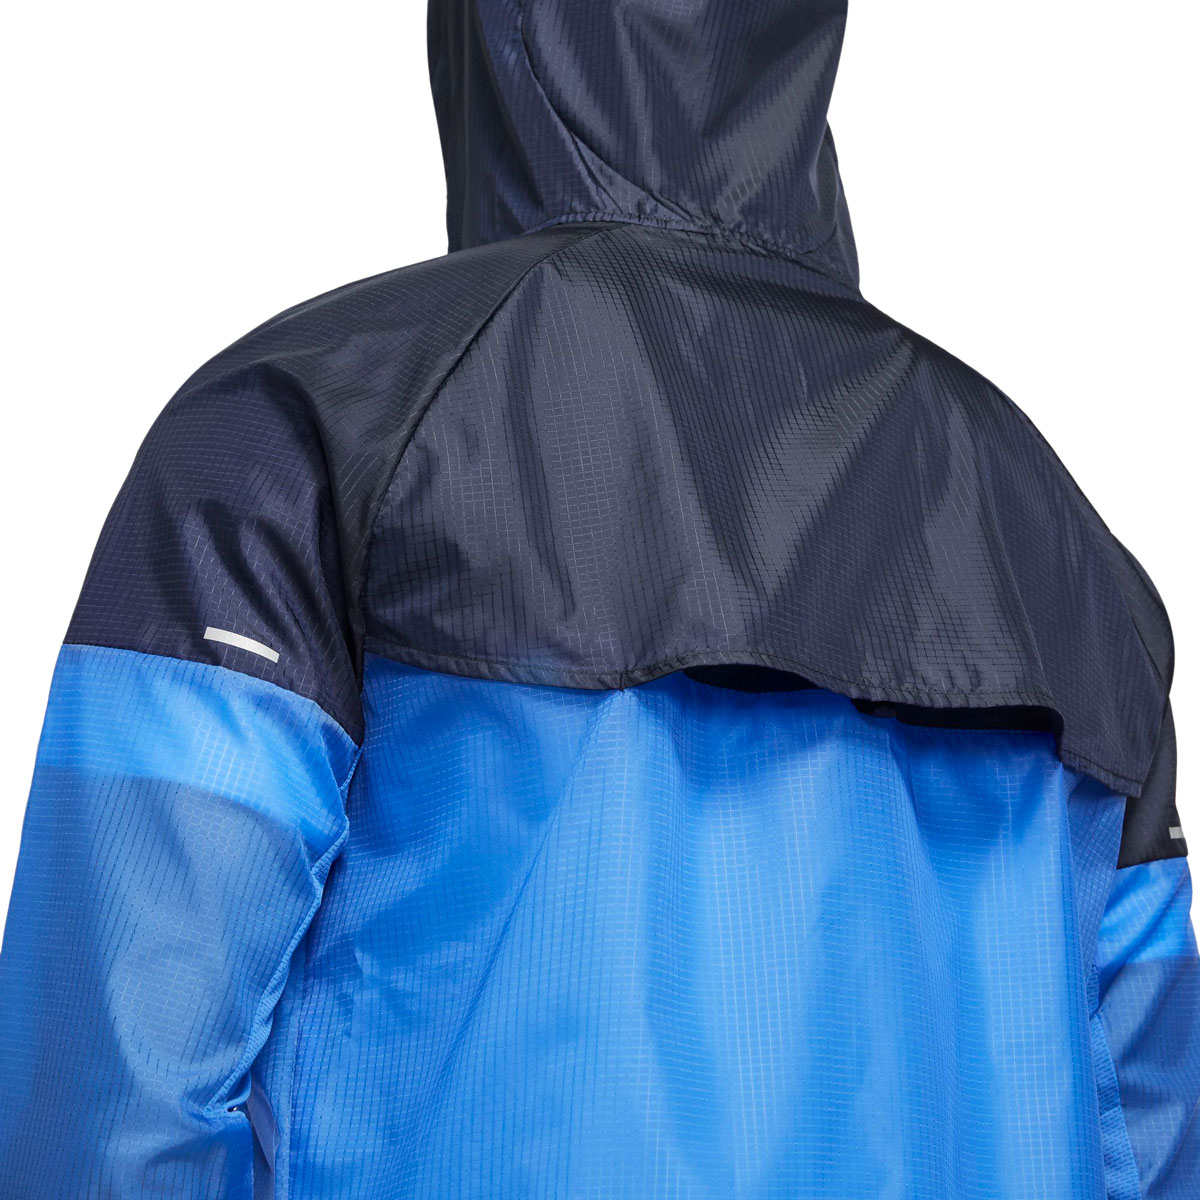 Men's Nike Windrunner Running Jacket - Color: Pacific Blue/Obsidian/Reflective Silver - Size: S, Pacific Blue/Obsidian/Reflective Silver, large, image 3